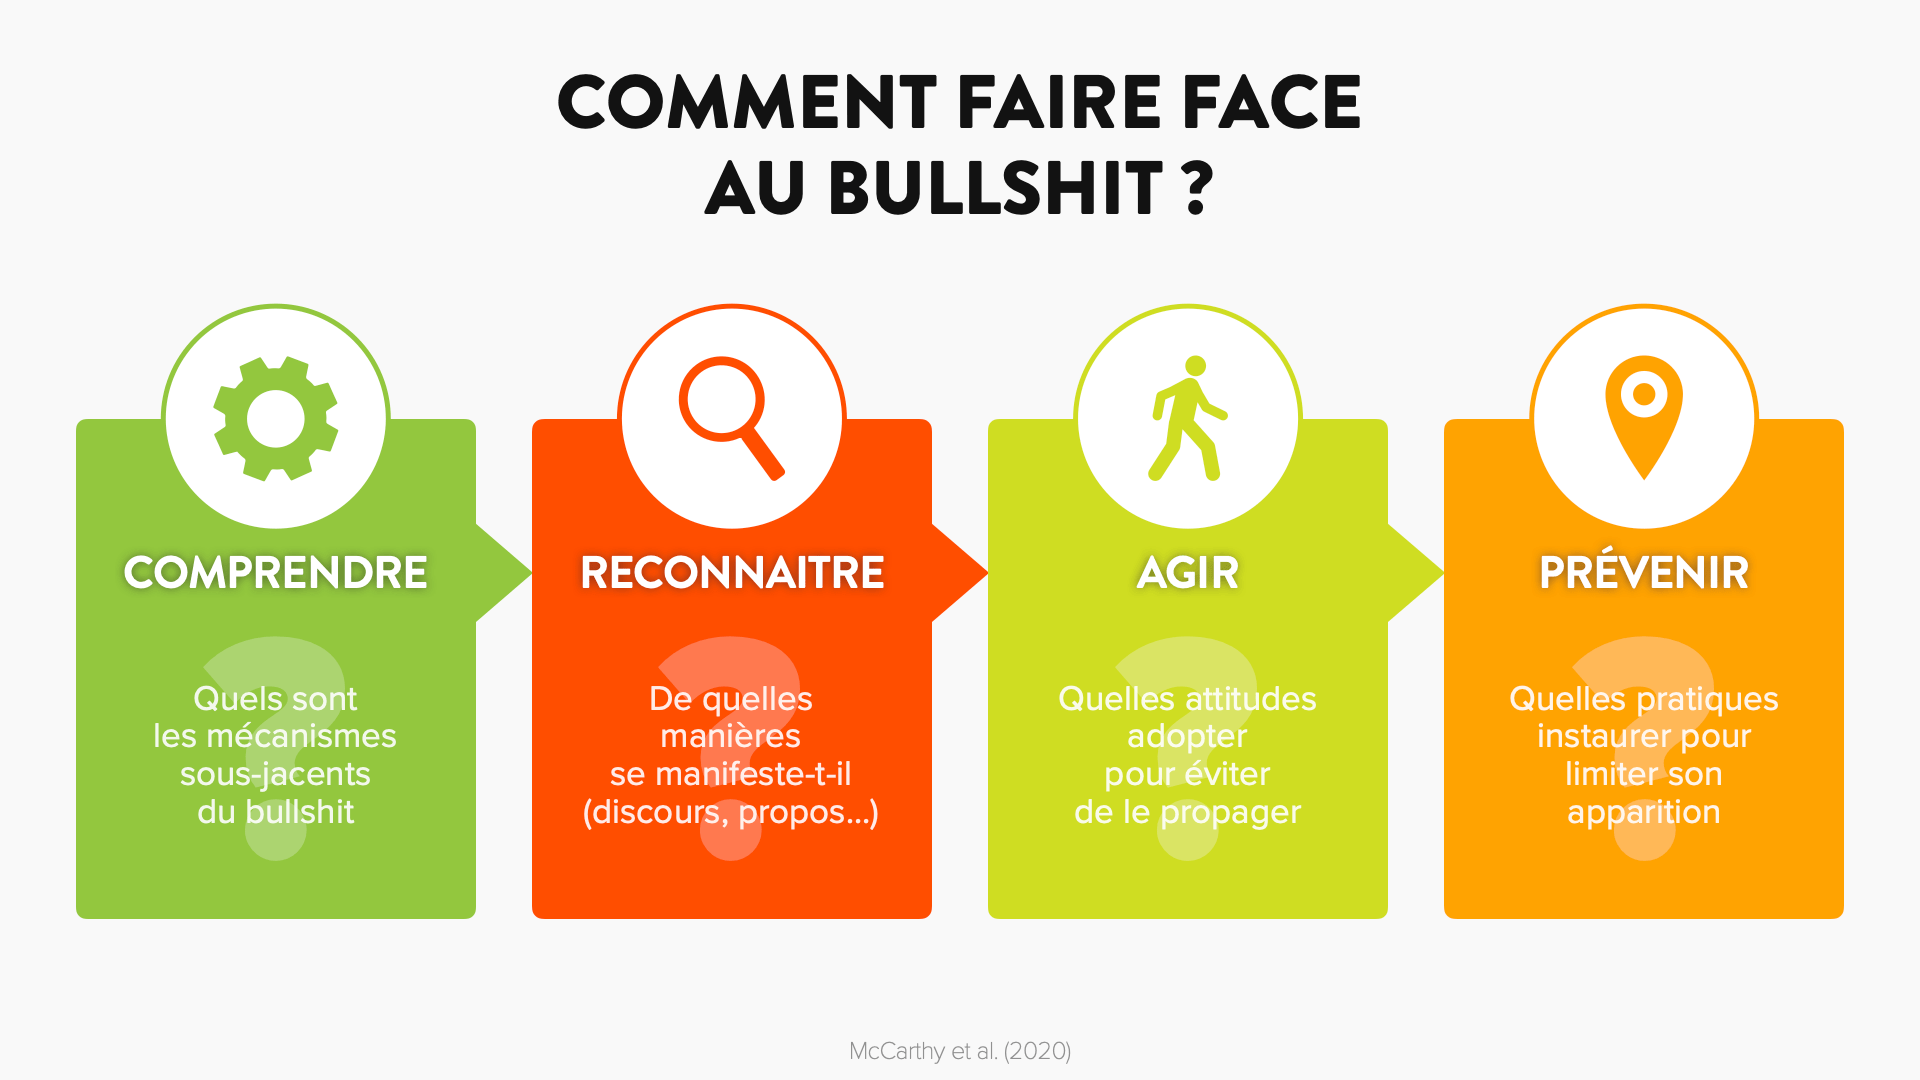 Comment faire face au bullshit | David Vellut